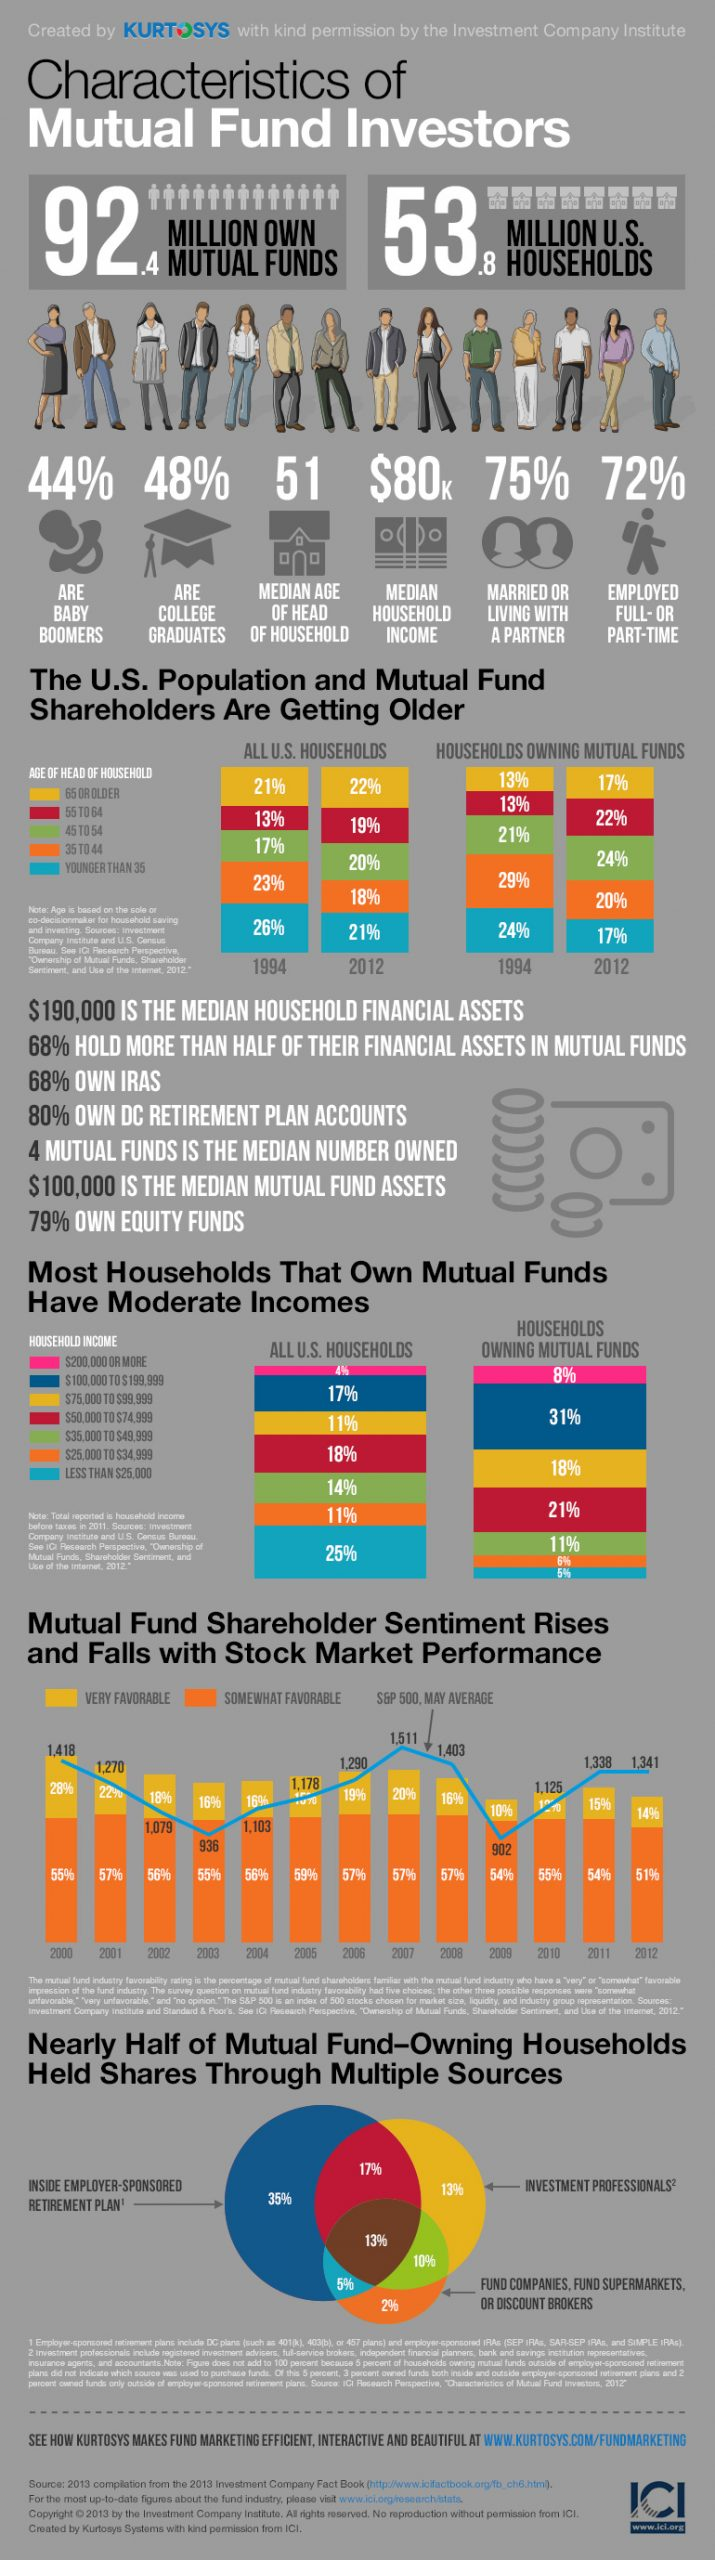 Who's Your Average Mutual Fund Investor? [INFOGRAPHIC] 1